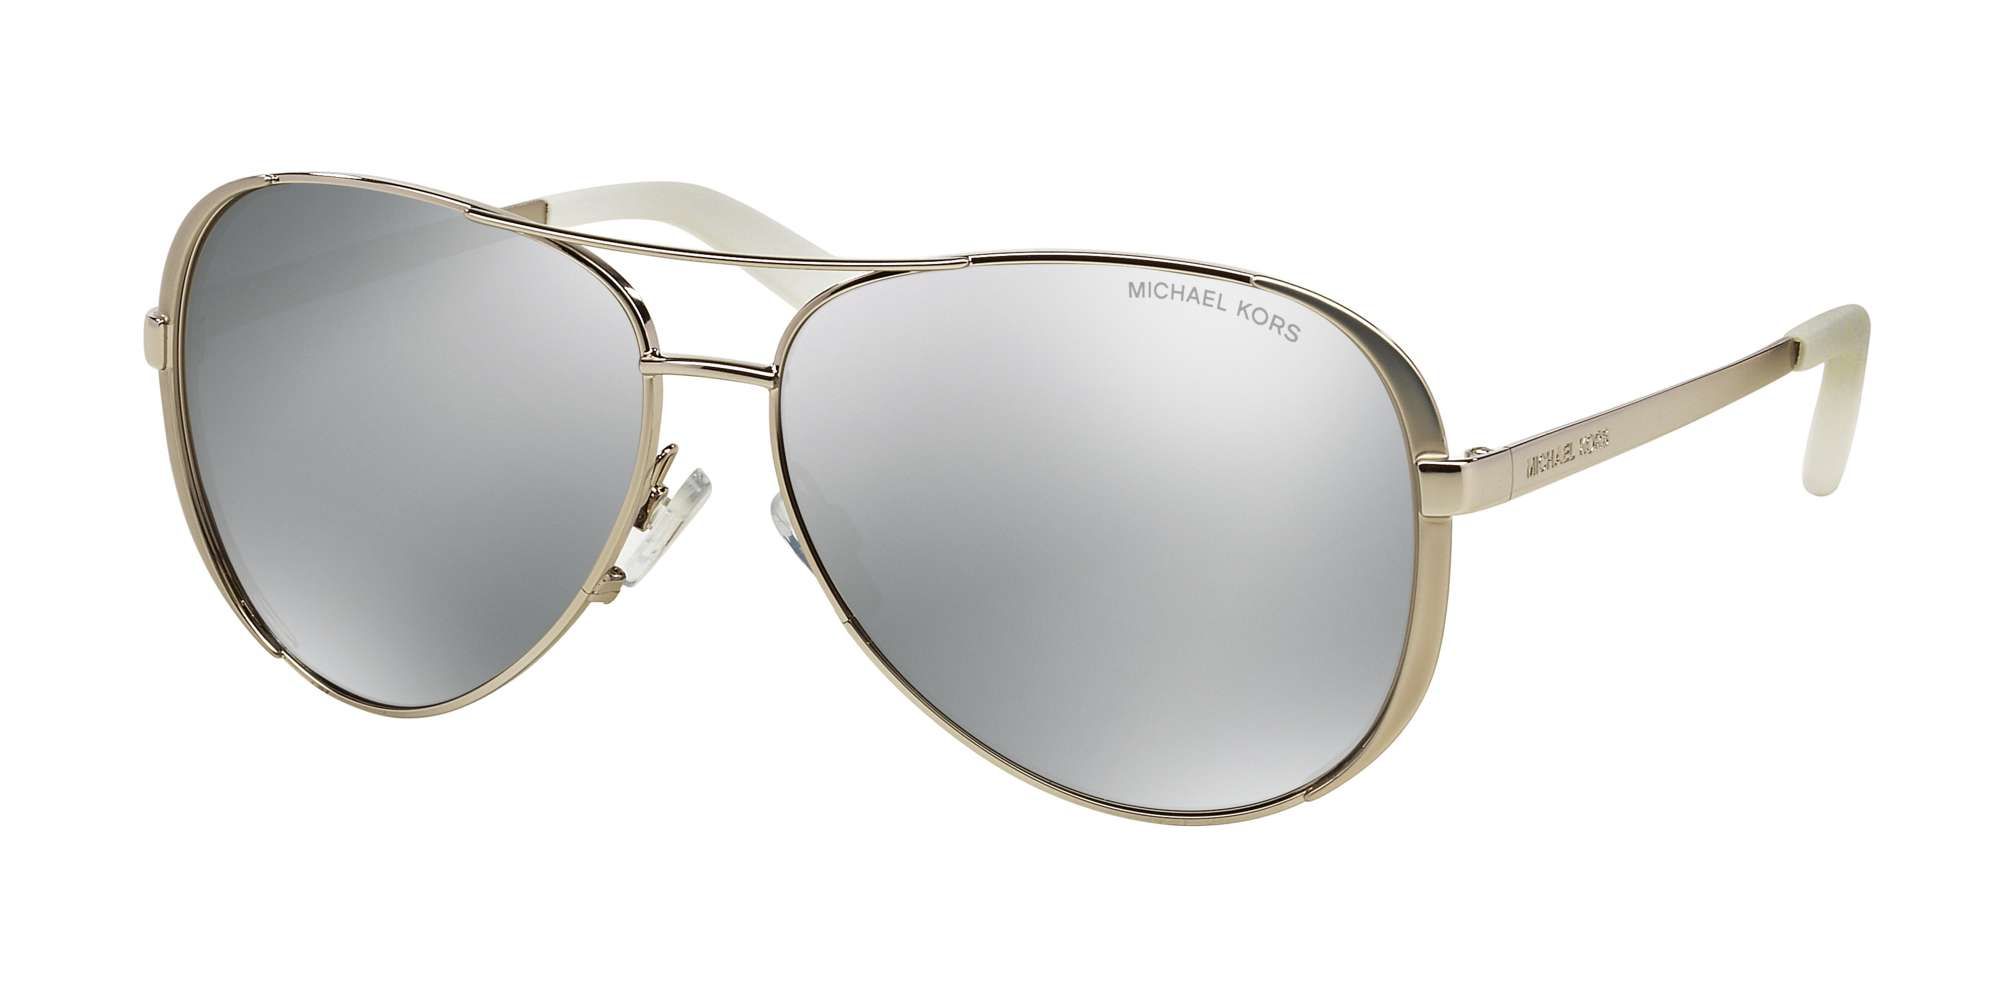 SILVER-TONE / SILVER MIRROR POLARIZED lenses